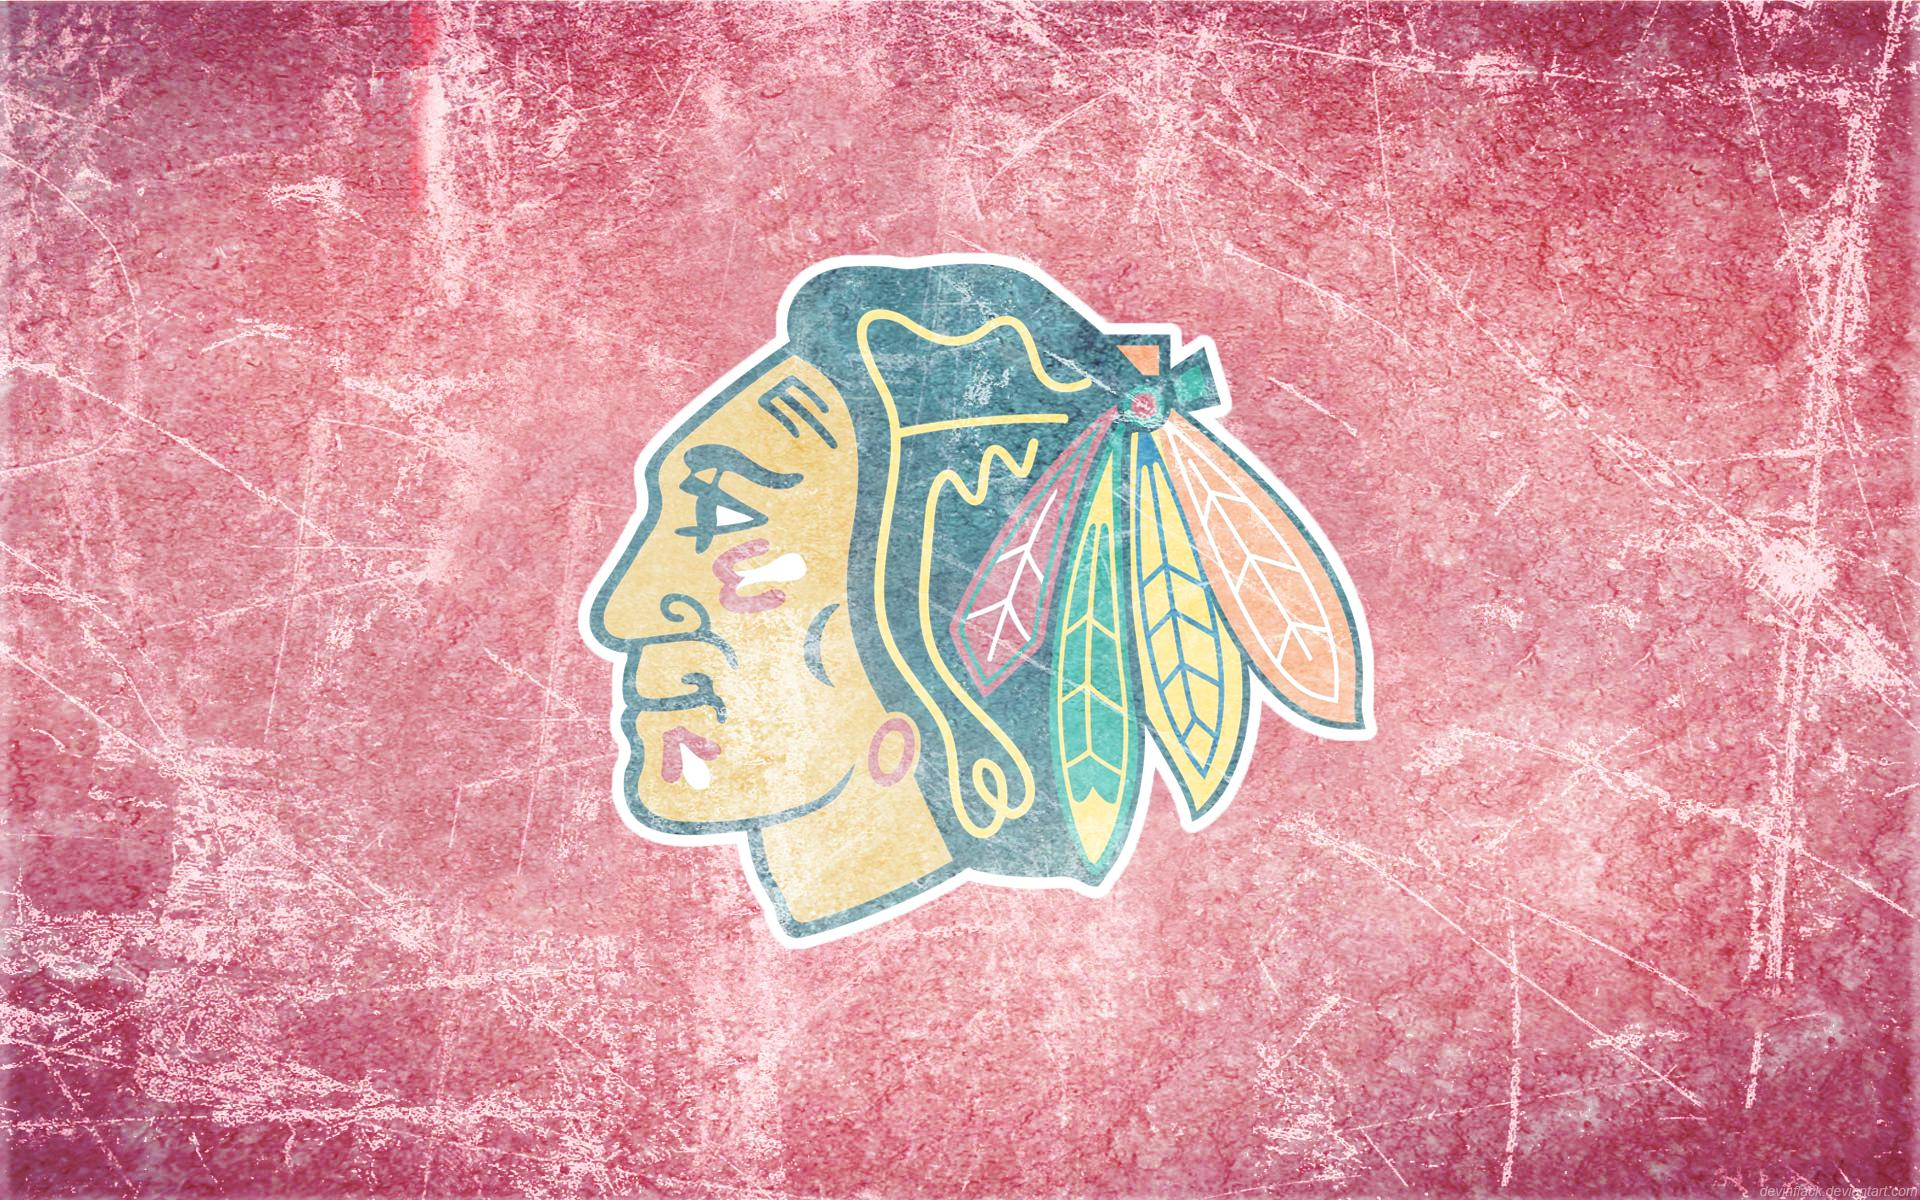 Chicago Blackhawks Wallpaper